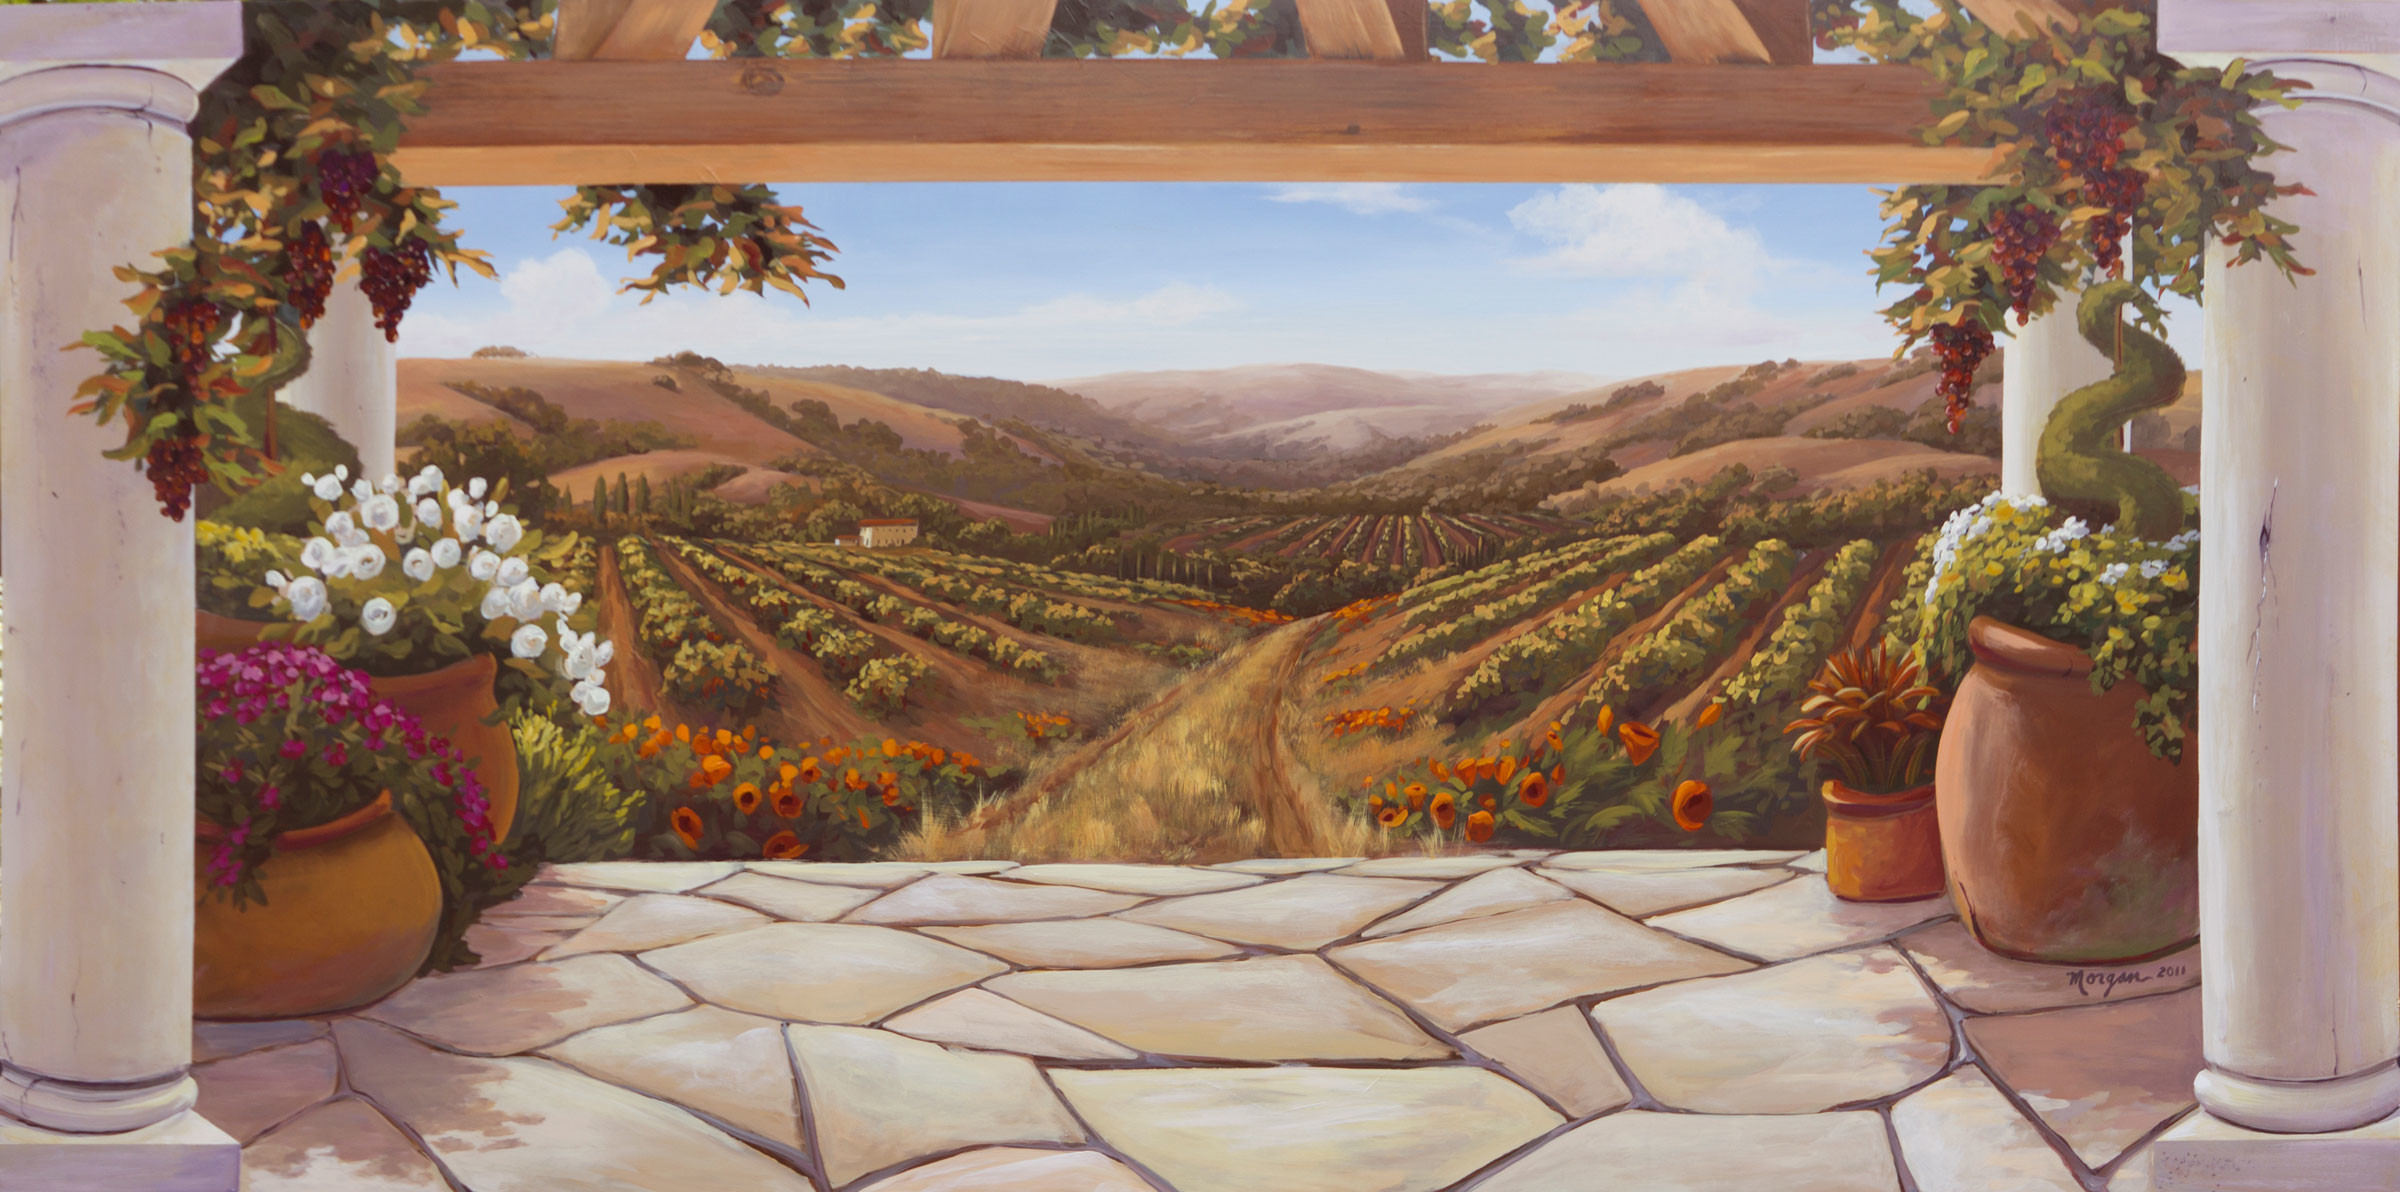 2400x1192 Napa Vineyard Wallpaper